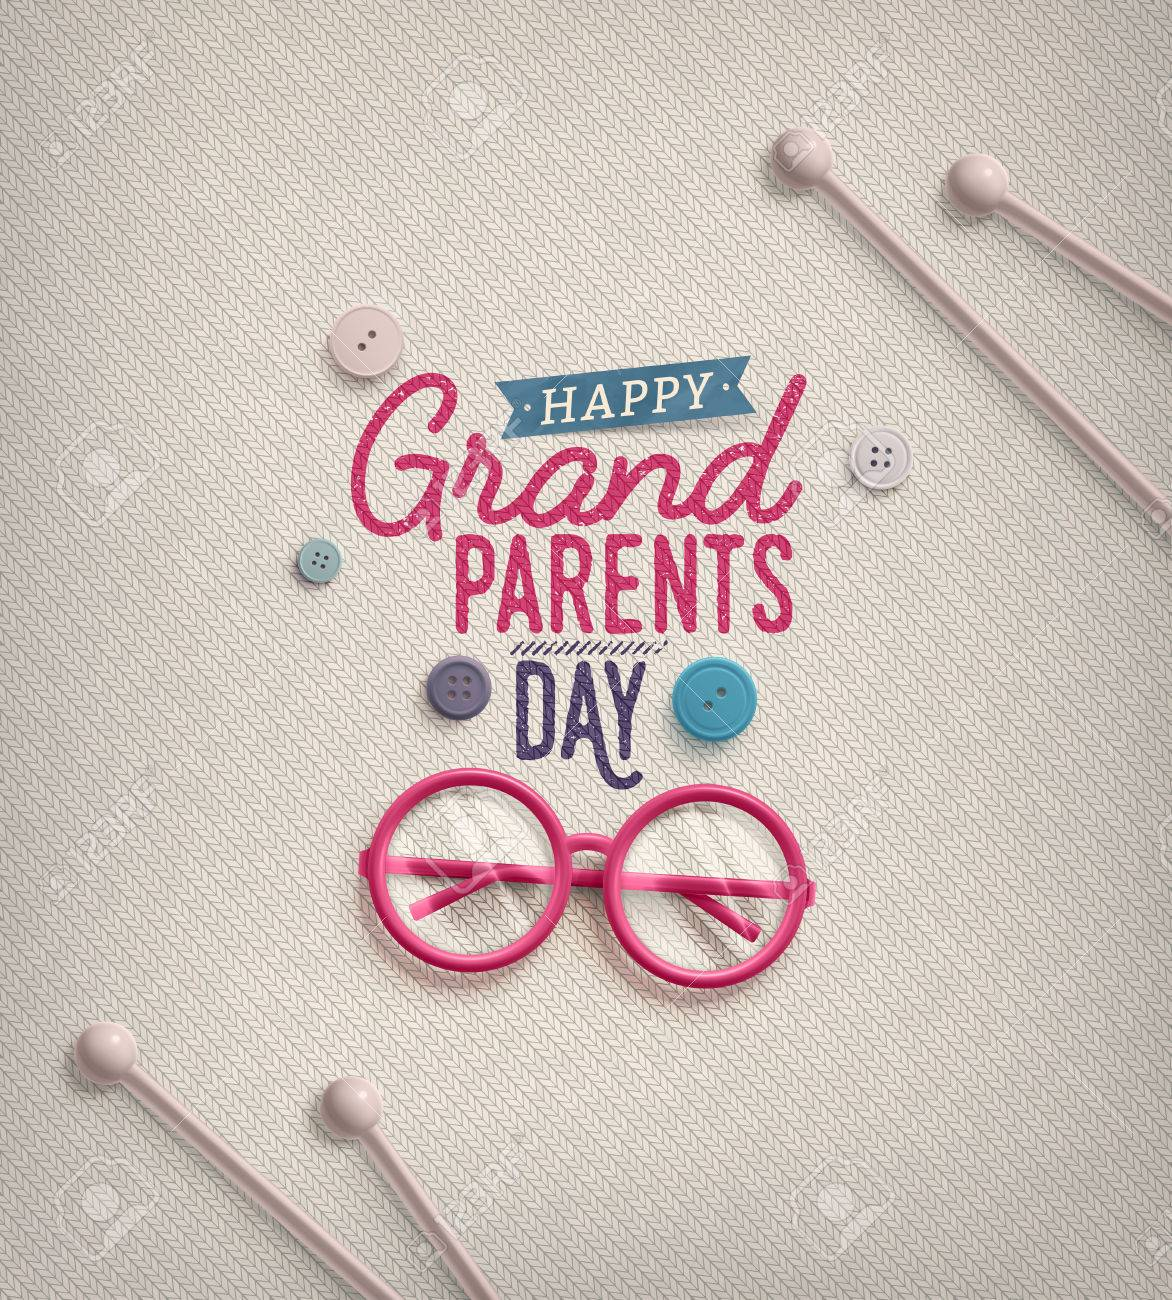 Grandparents day greeting card royalty free cliparts vectors and grandparents day greeting card stock vector 43876930 m4hsunfo